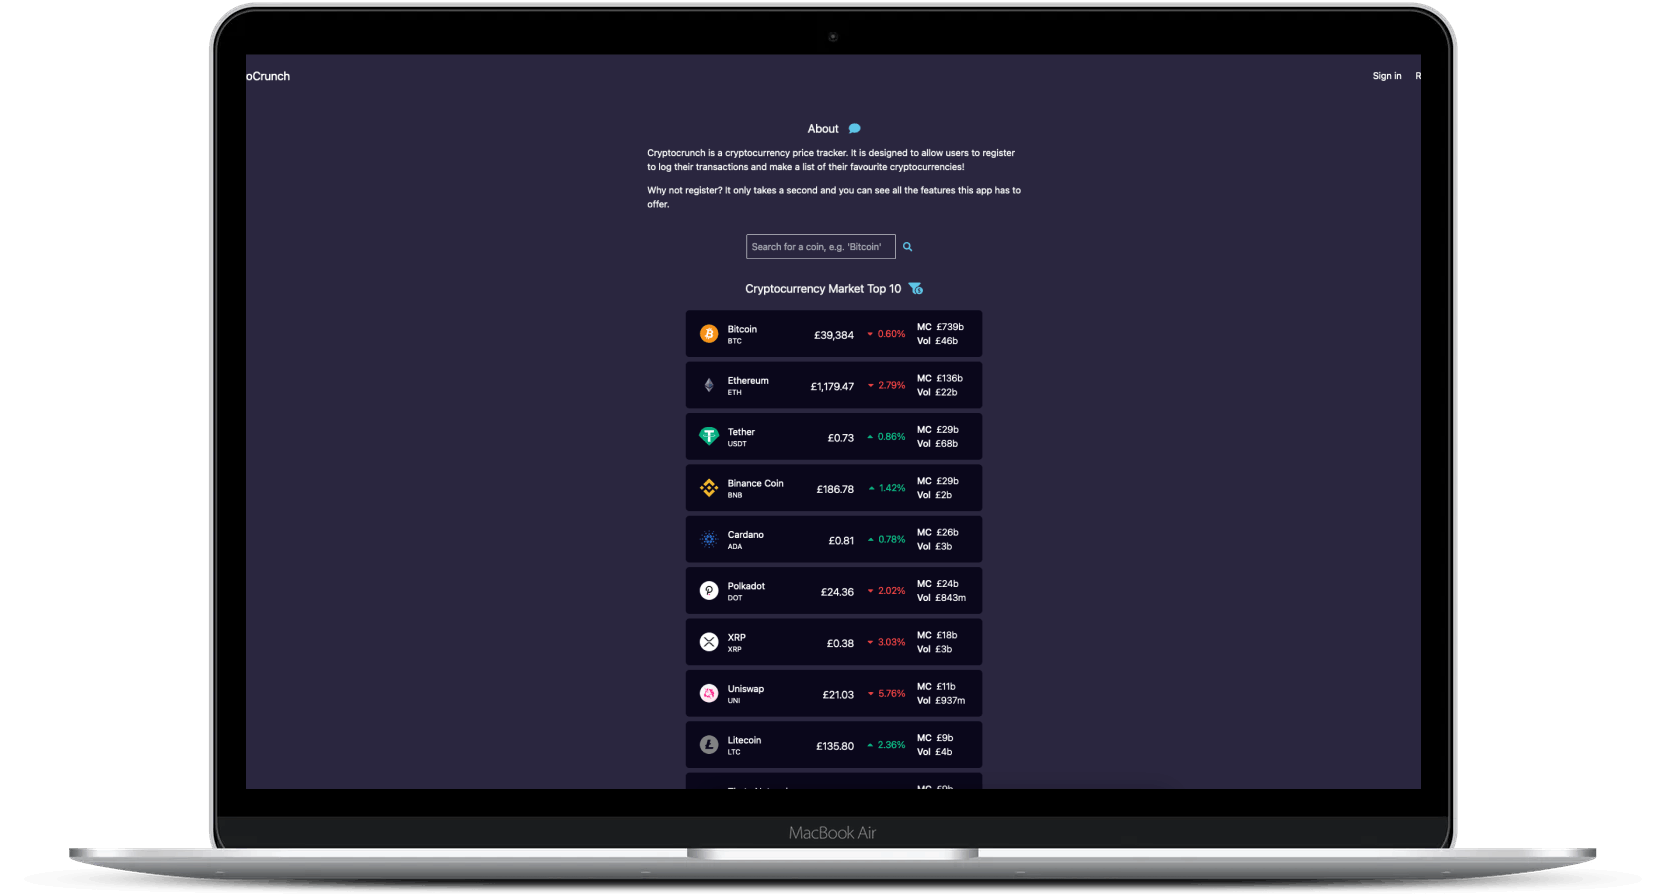 CryptoCrunch Price Tracker